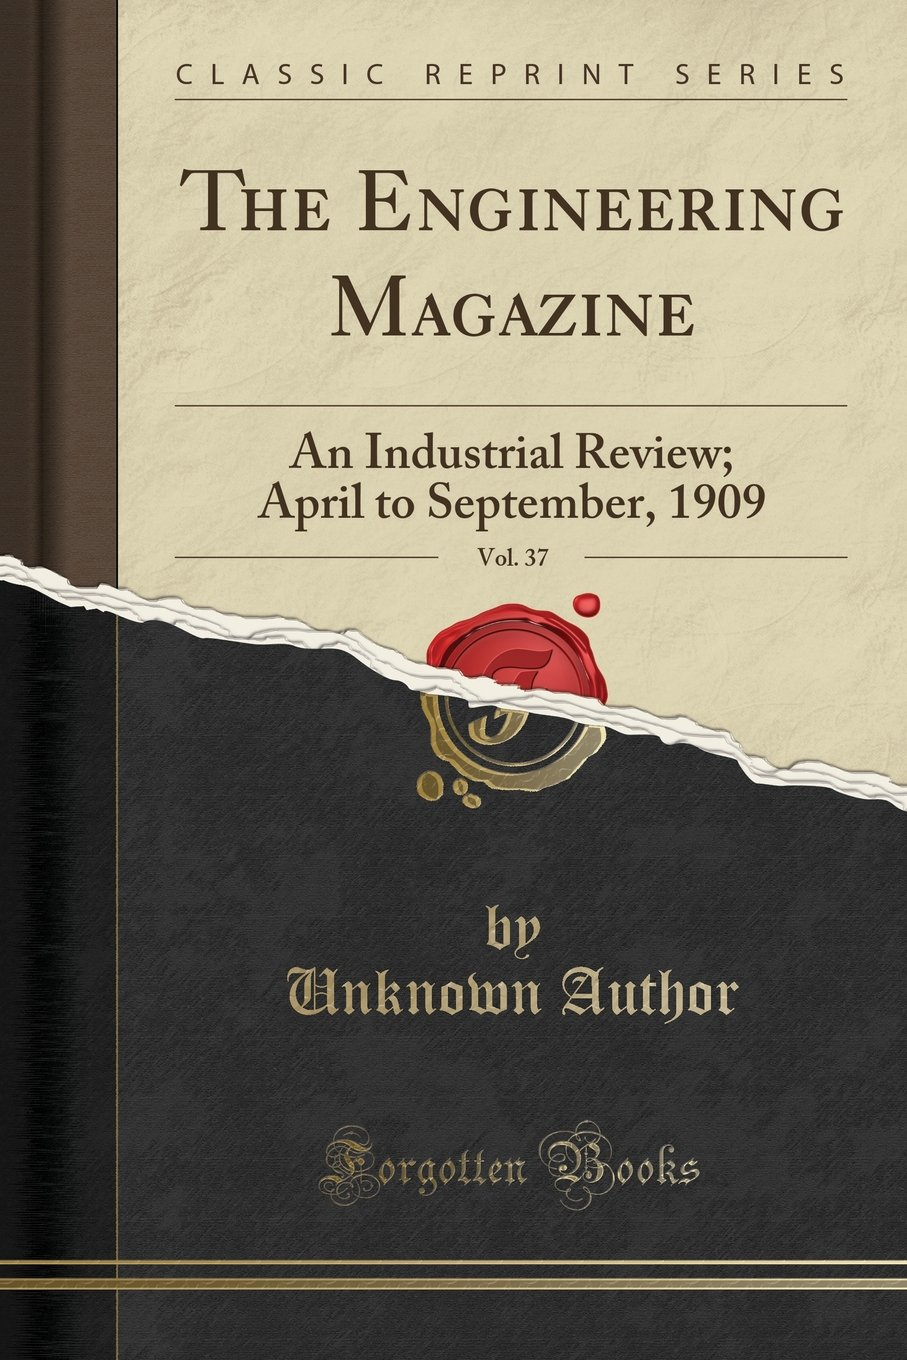 The Engineering Magazine, Vol. 37: An Industrial Review; April to September, 1909 (Classic Reprint) ebook